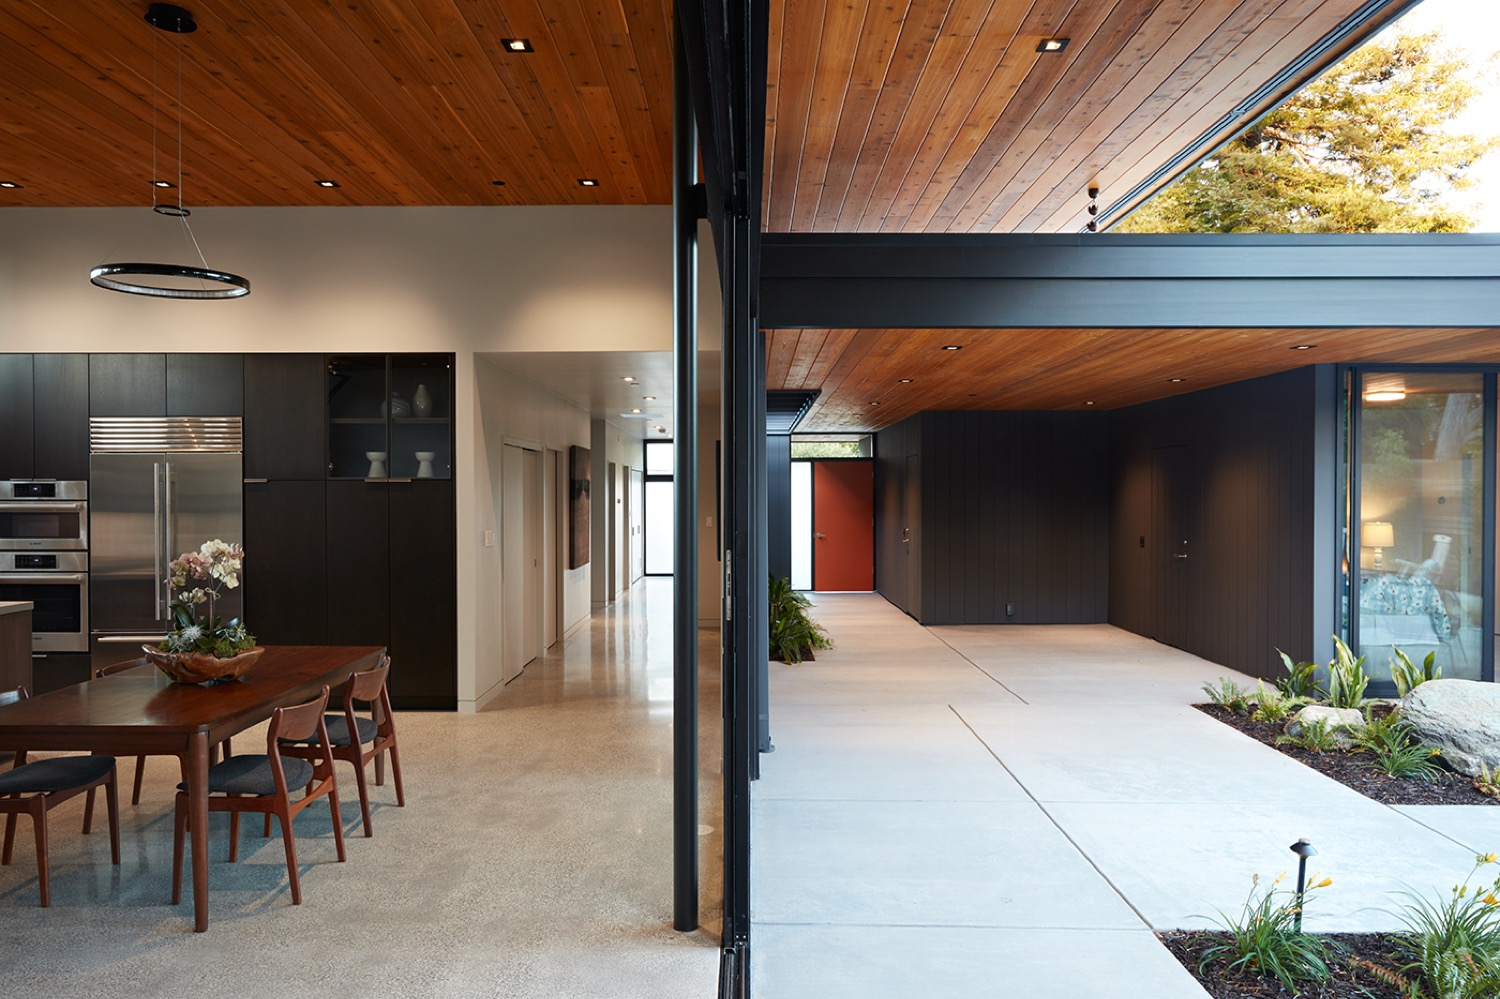 One enters through the front door directly into the courtyard, underneath a large eave in case of inclement weather.